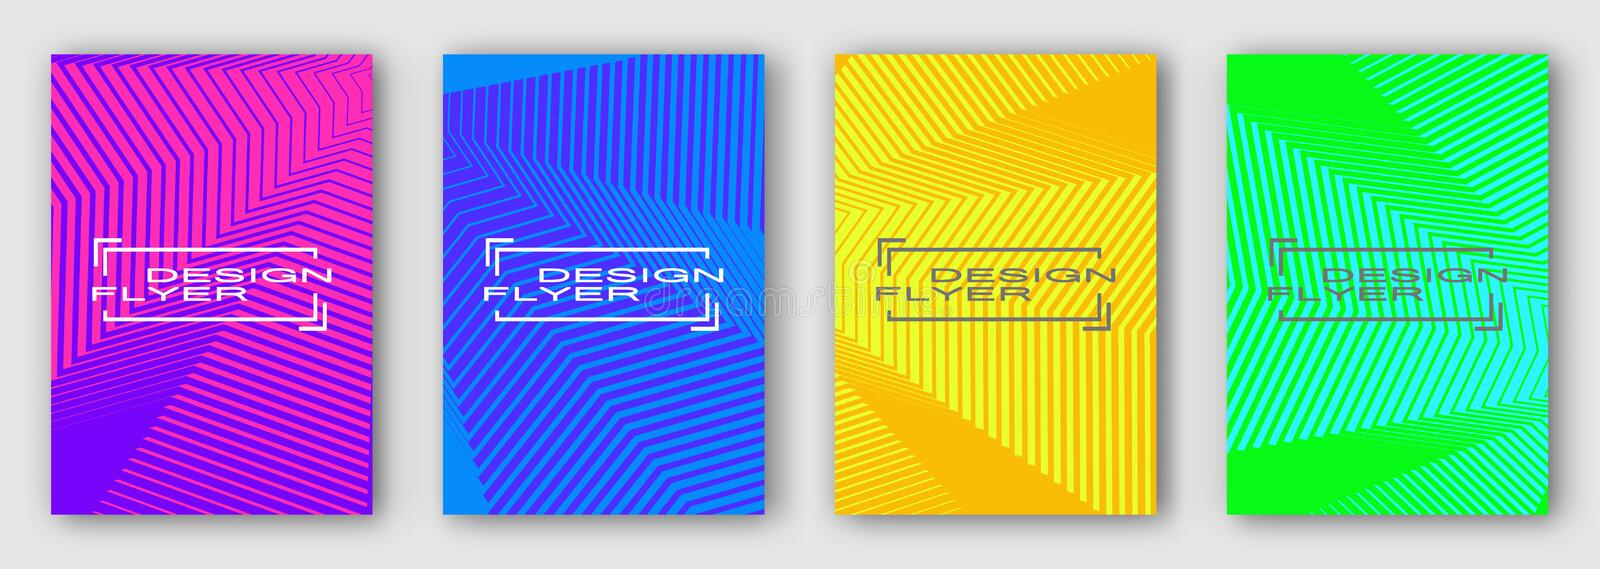 Set of four brochures, posters, flyers. Multi colored geometric lines with curves. Purple blue orange green. royalty free illustration